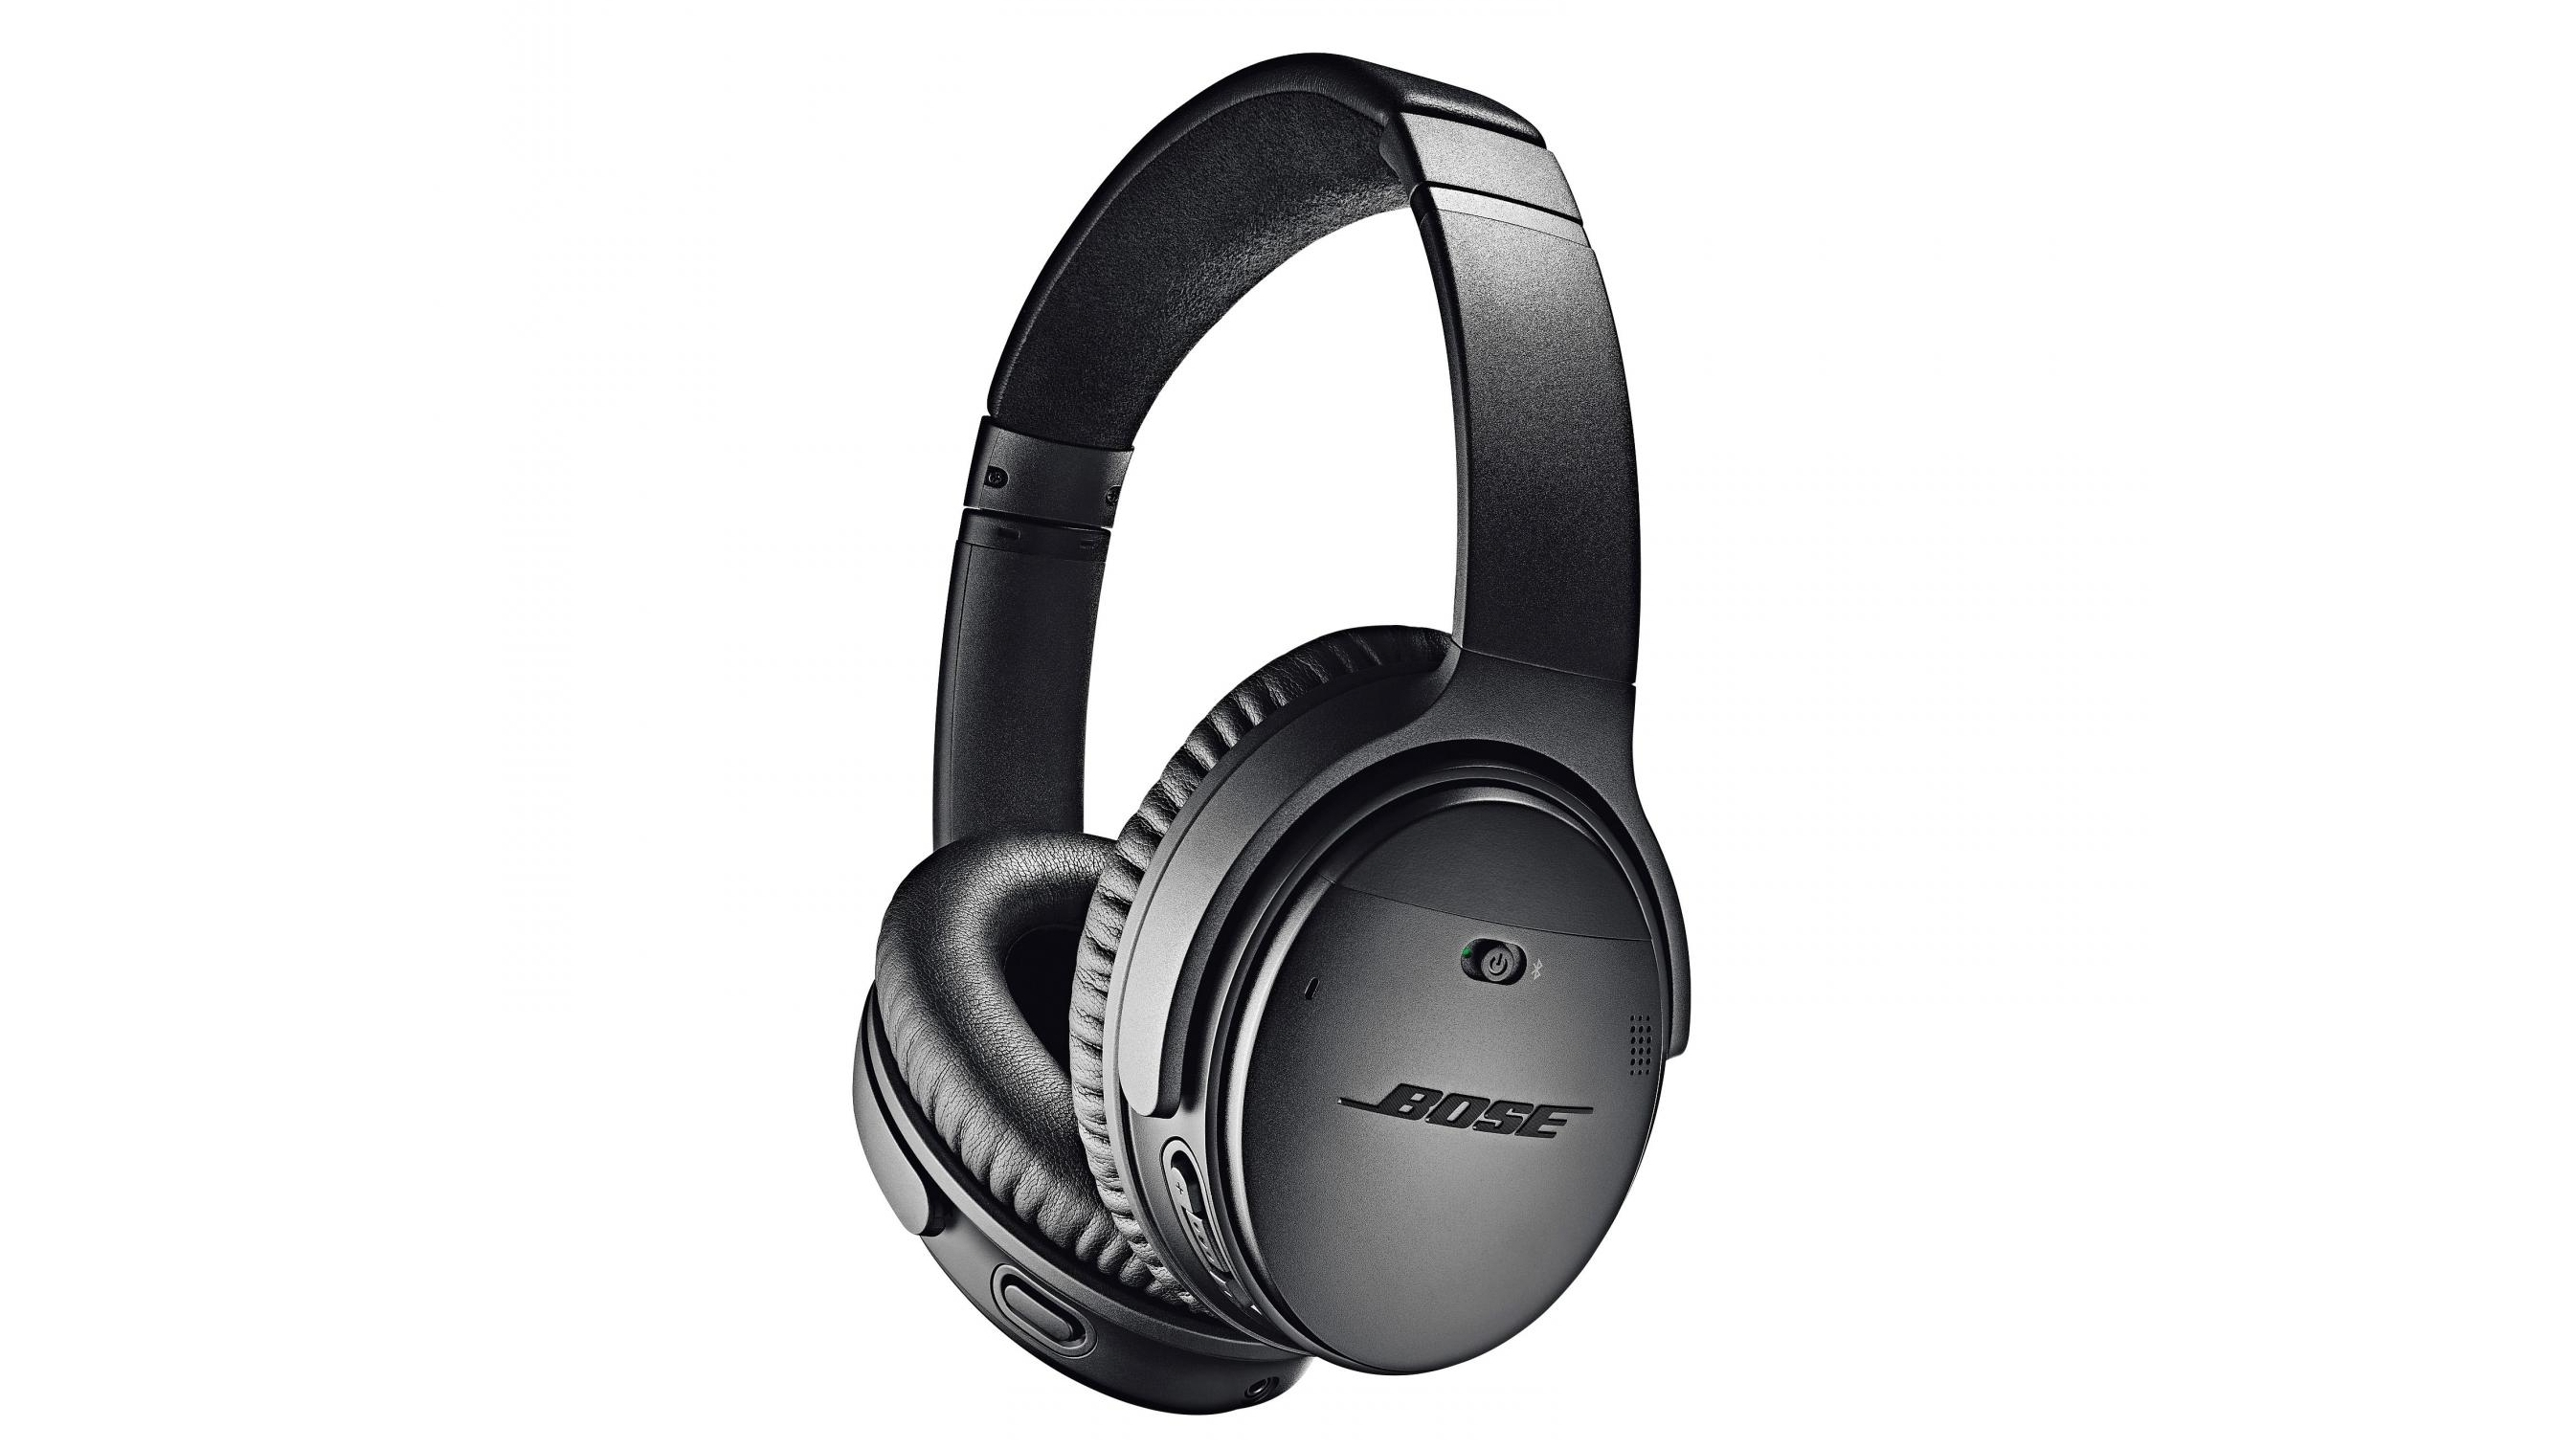 f700d7785ca Buy Bose QuietComfort 35 Series II Over-Ear Wireless Headphones - Black |  Harvey Norman AU